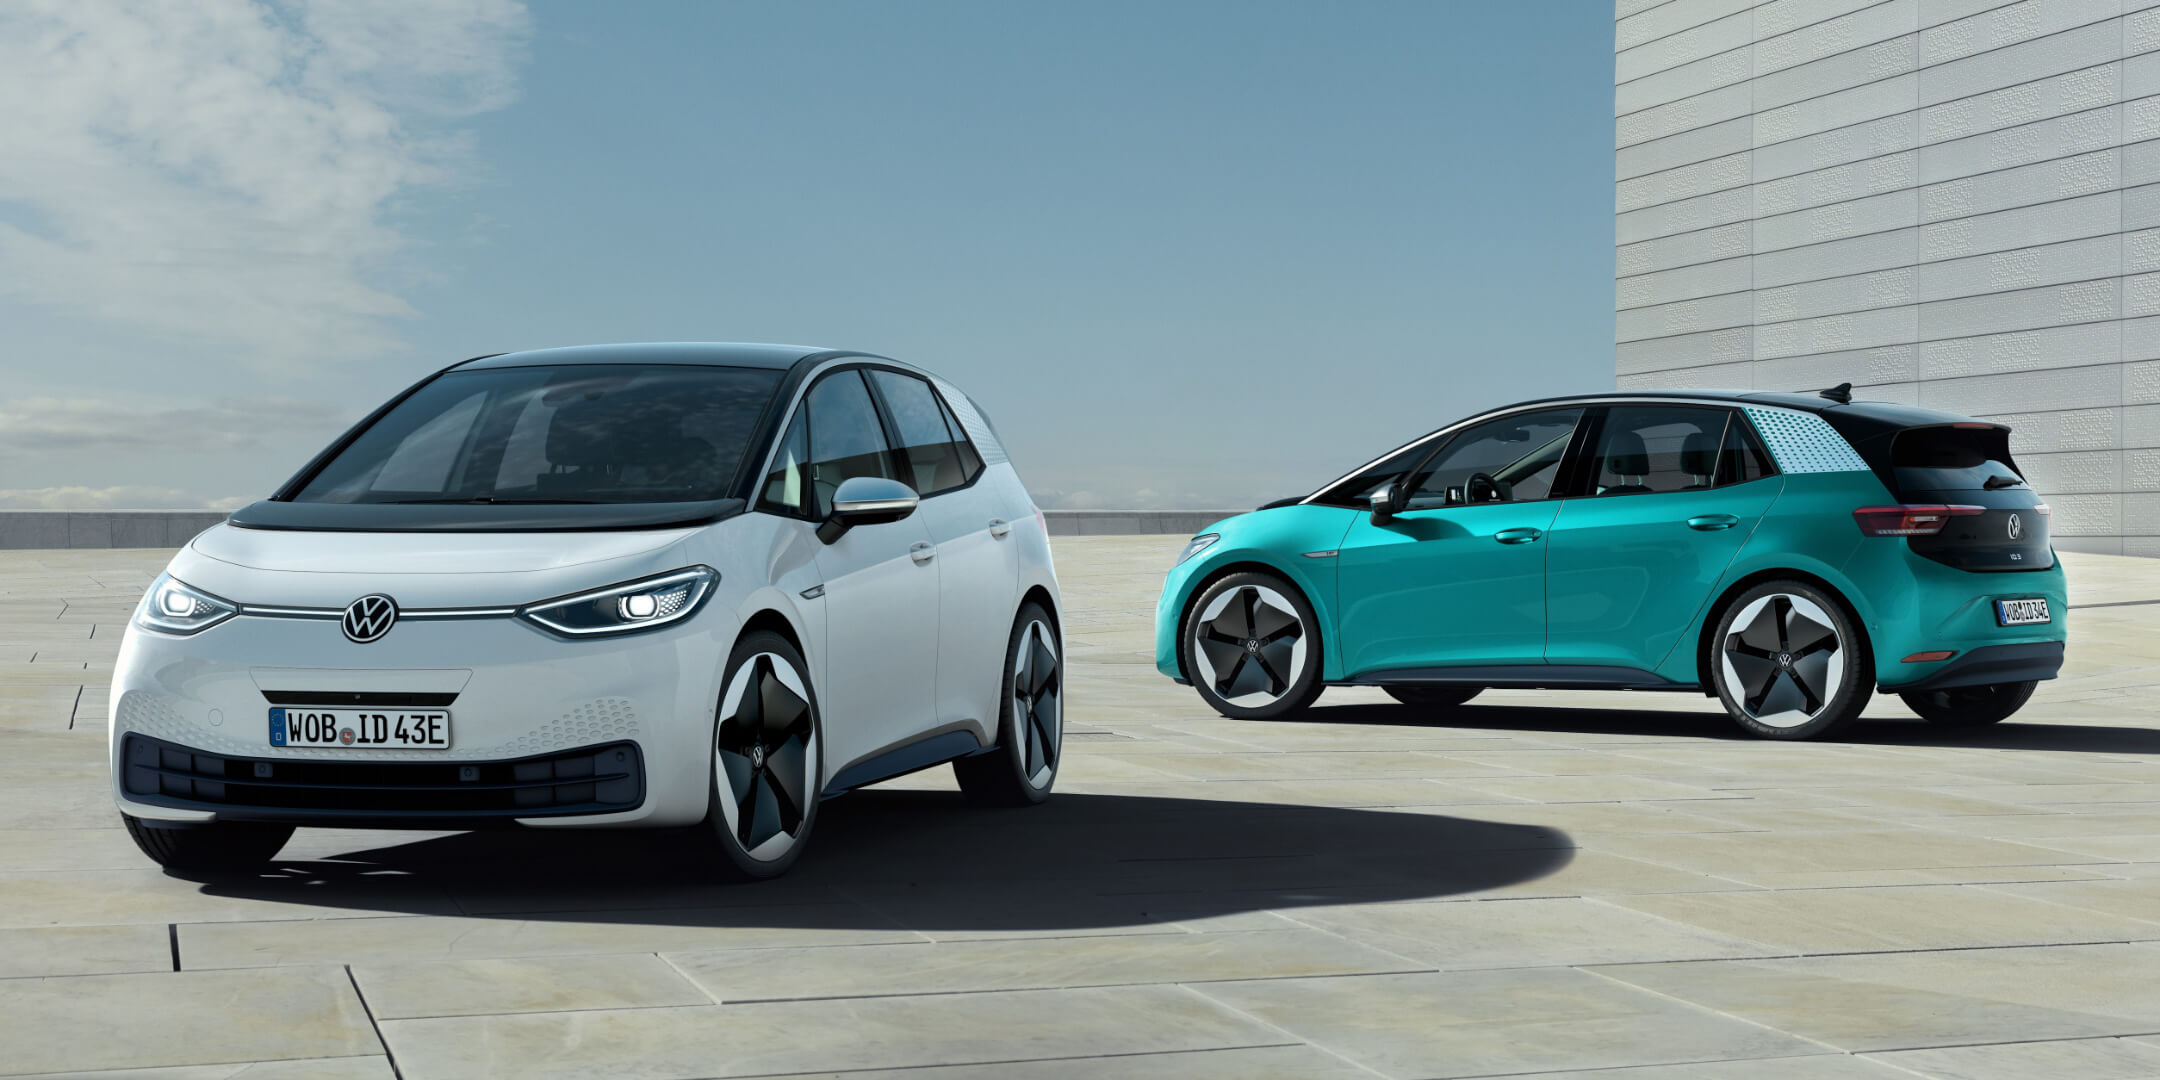 Volkswagen reveals the all-electric ID.3 hatchback that'll do up to 340 miles on European roads